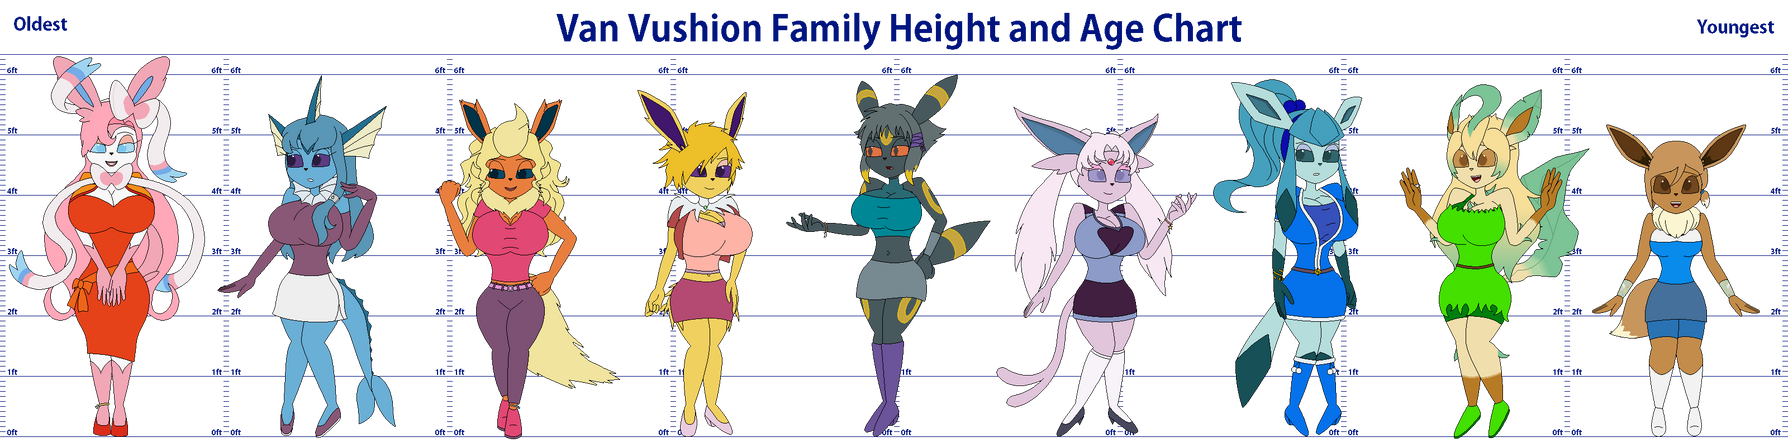 Van Vushion Family Height and Age Chart by redryan2009